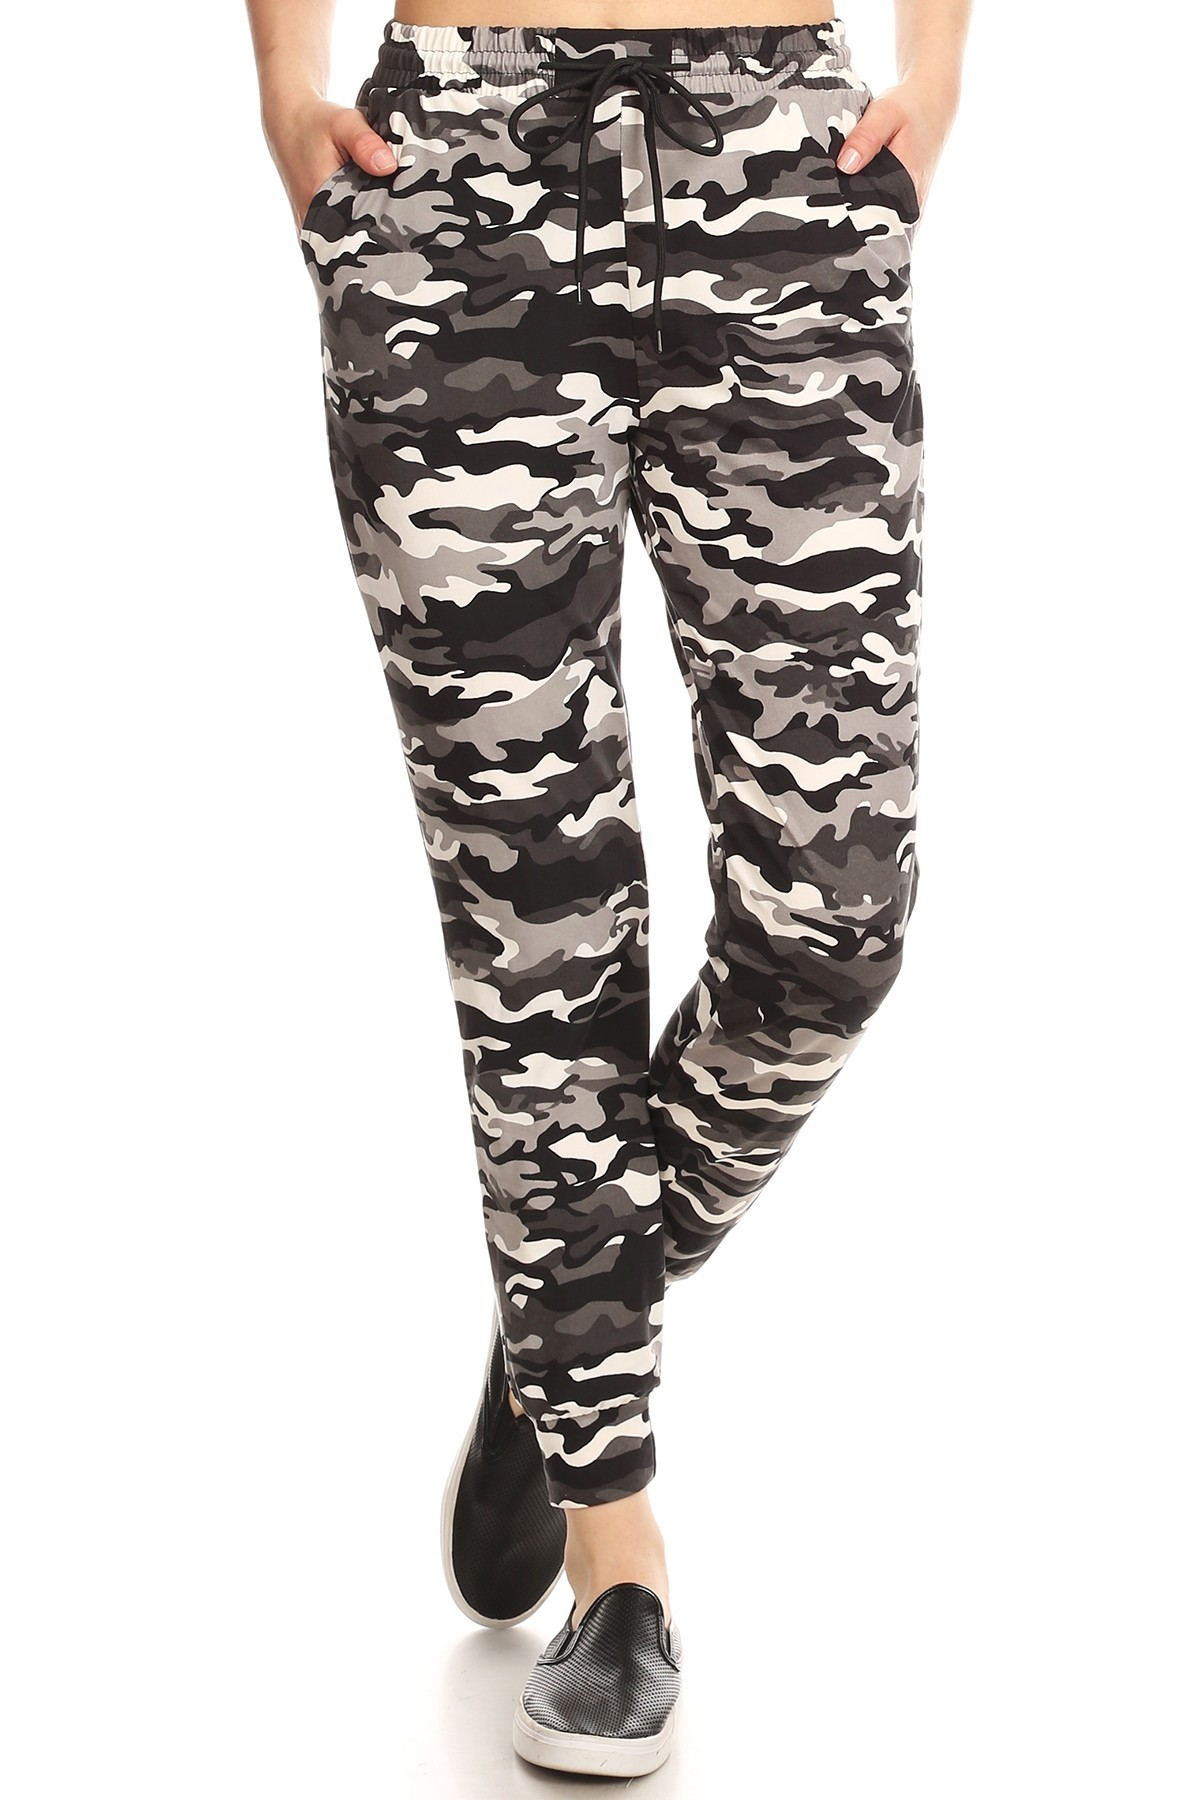 BLACK/WHITE/GREY CAMO PRINT JOGGER WITH SHOE LACE TIE #8TRK36-09